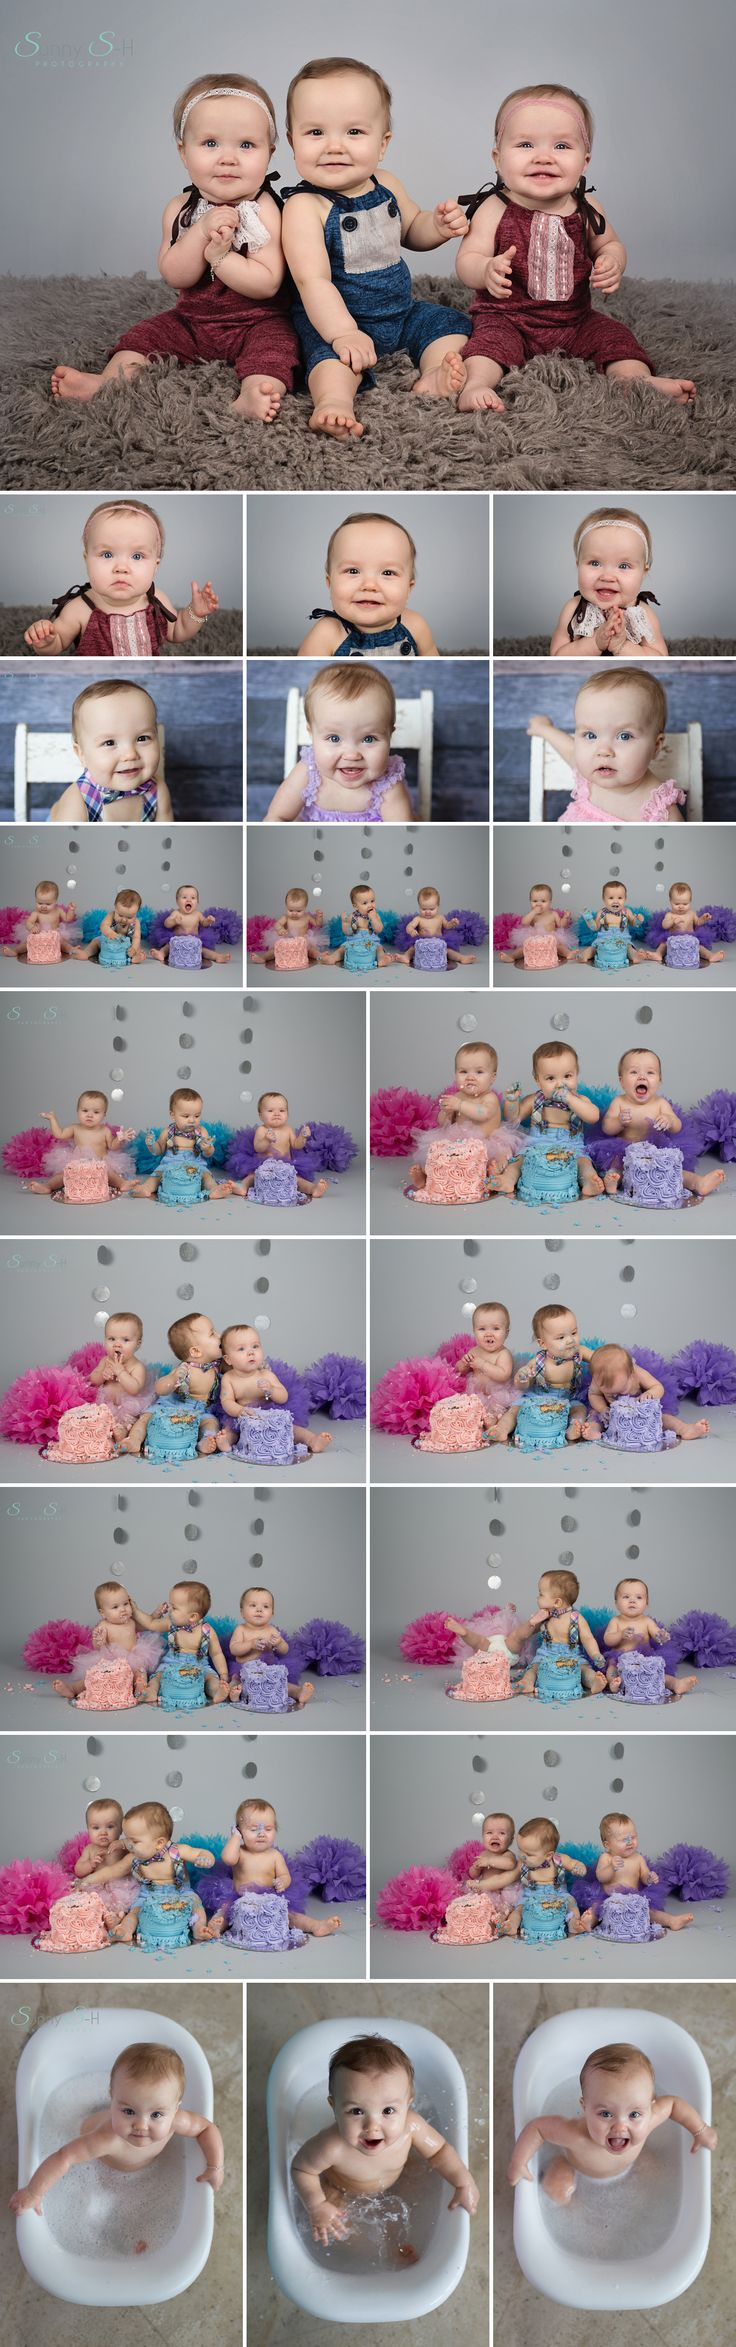 1000 Ideas About Triplets Photography On Pinterest Triplets